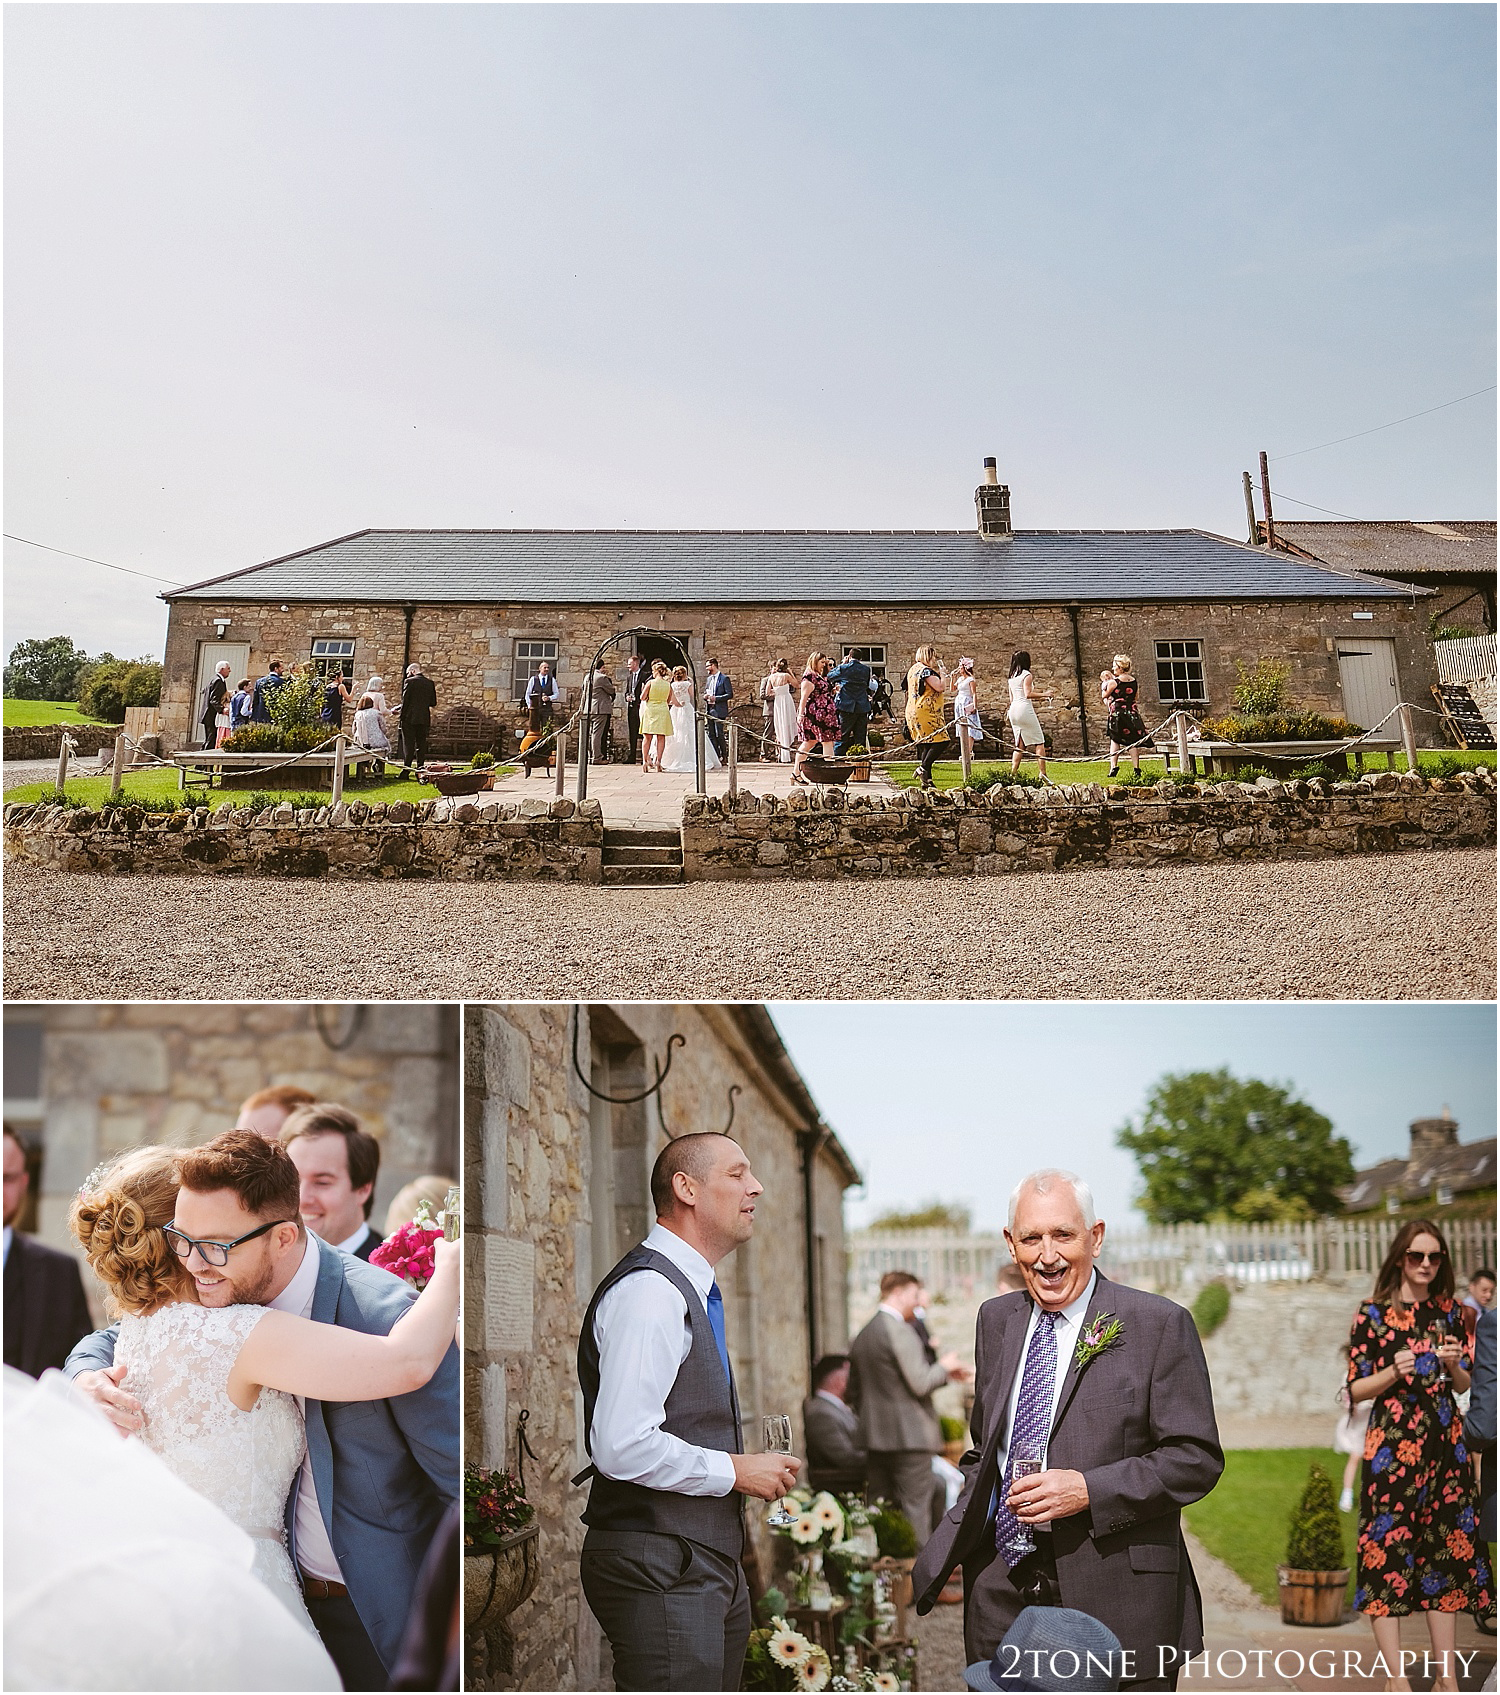 Doxford barns wedding photographer 040.jpg